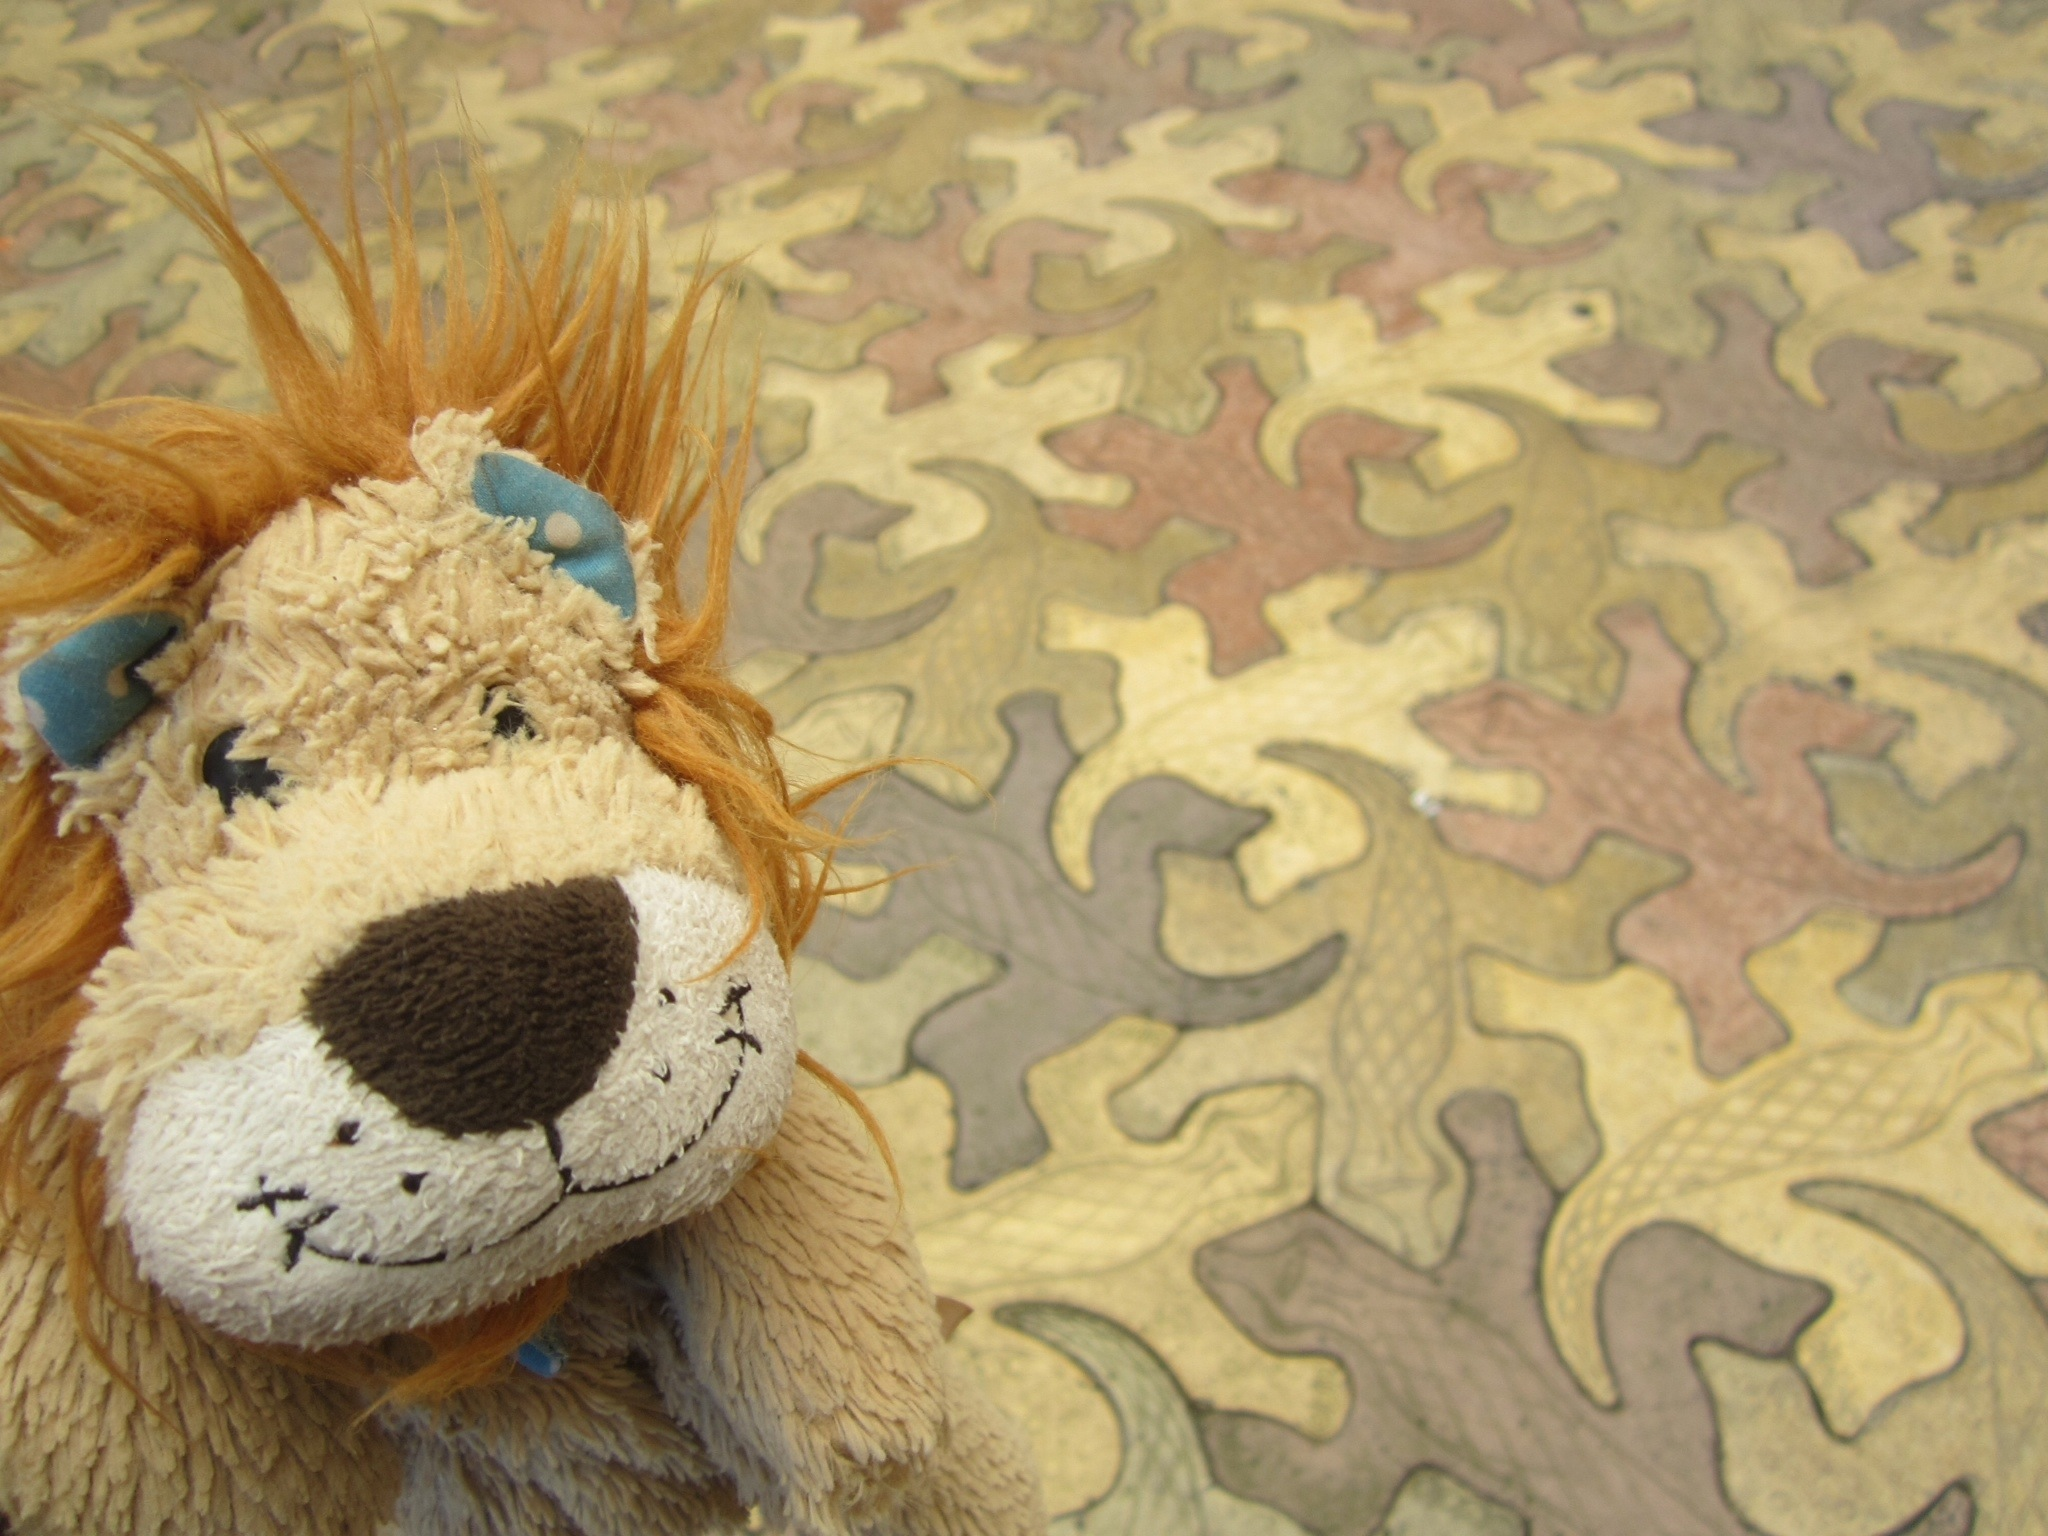 Lewis is edu tained at the tjapukai aboriginal cultural park lewis the lion admire the tessellated lizard tile floor dailygadgetfo Images